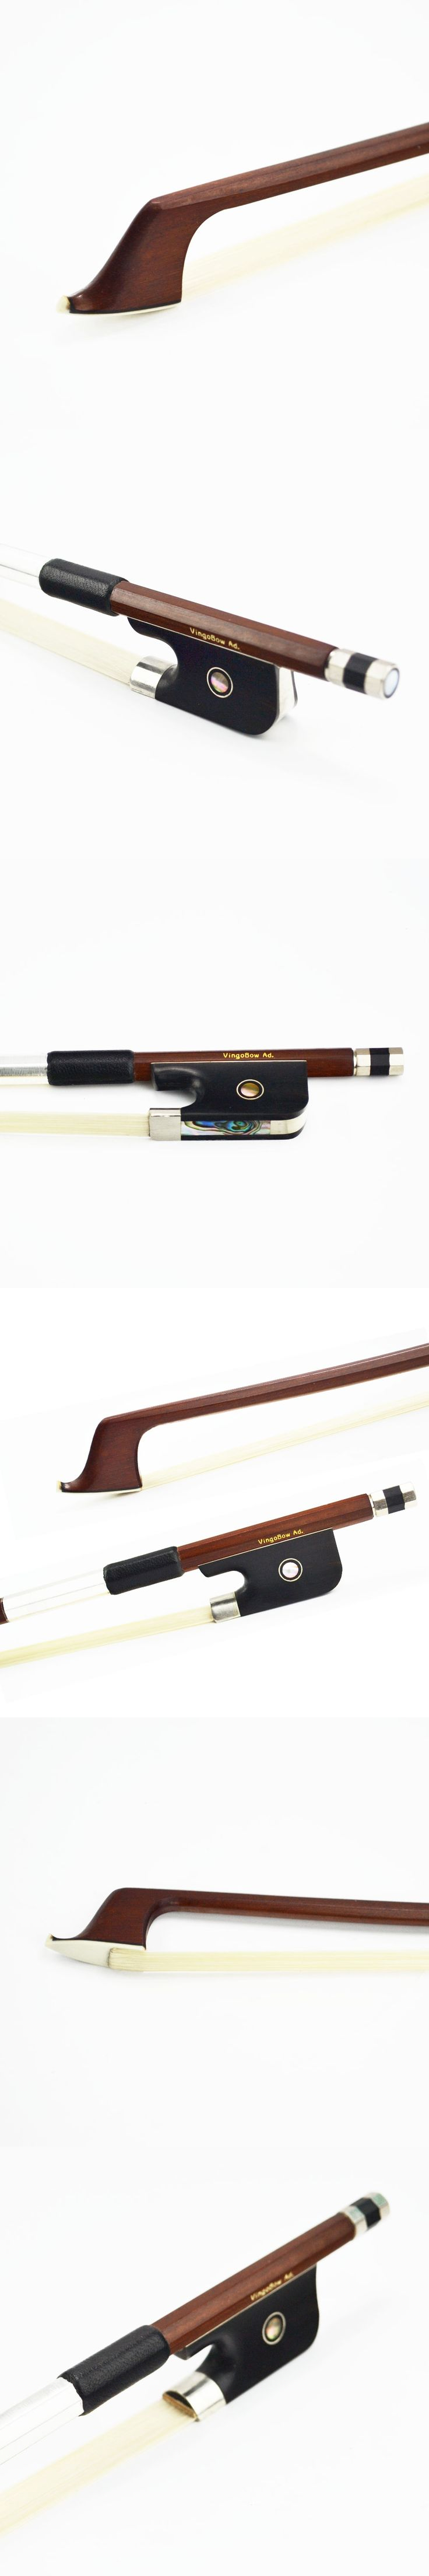 FREE SHIPPING 1/2 Size 310C Brazilwood CELLO BOW Good Quality Ebony Frog White Horsehair Straight Violin Parts and Accessories